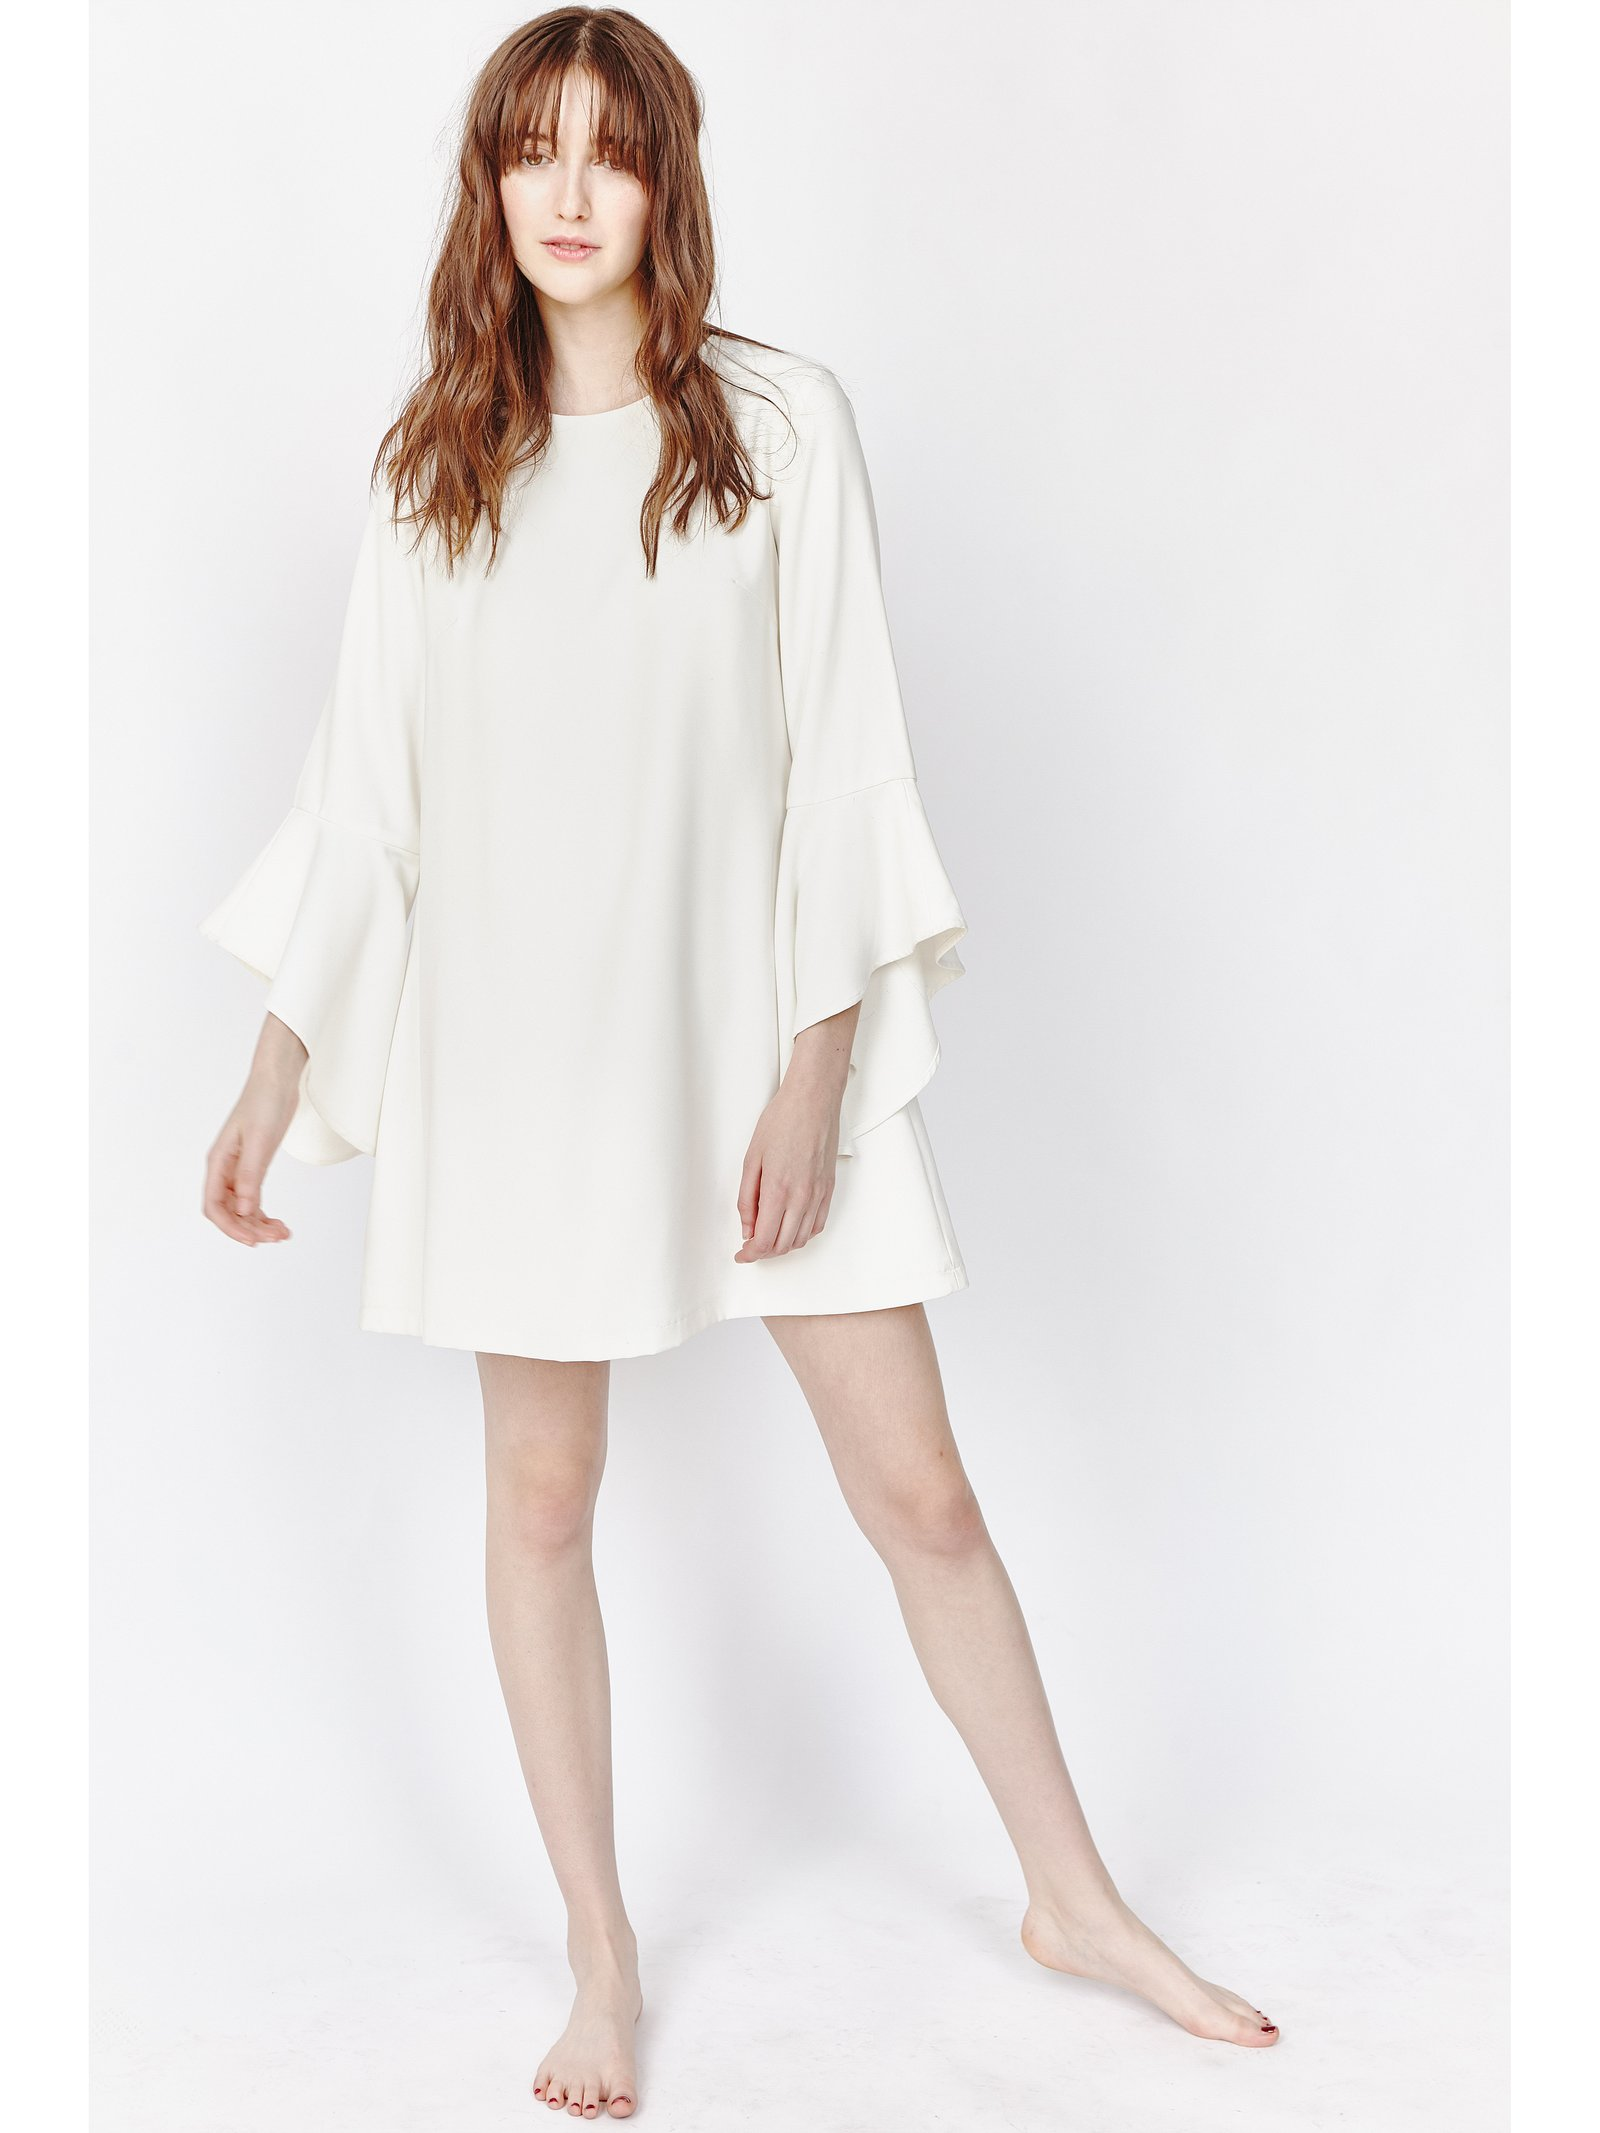 Hilary MacMillan Bell Sleeve Dress